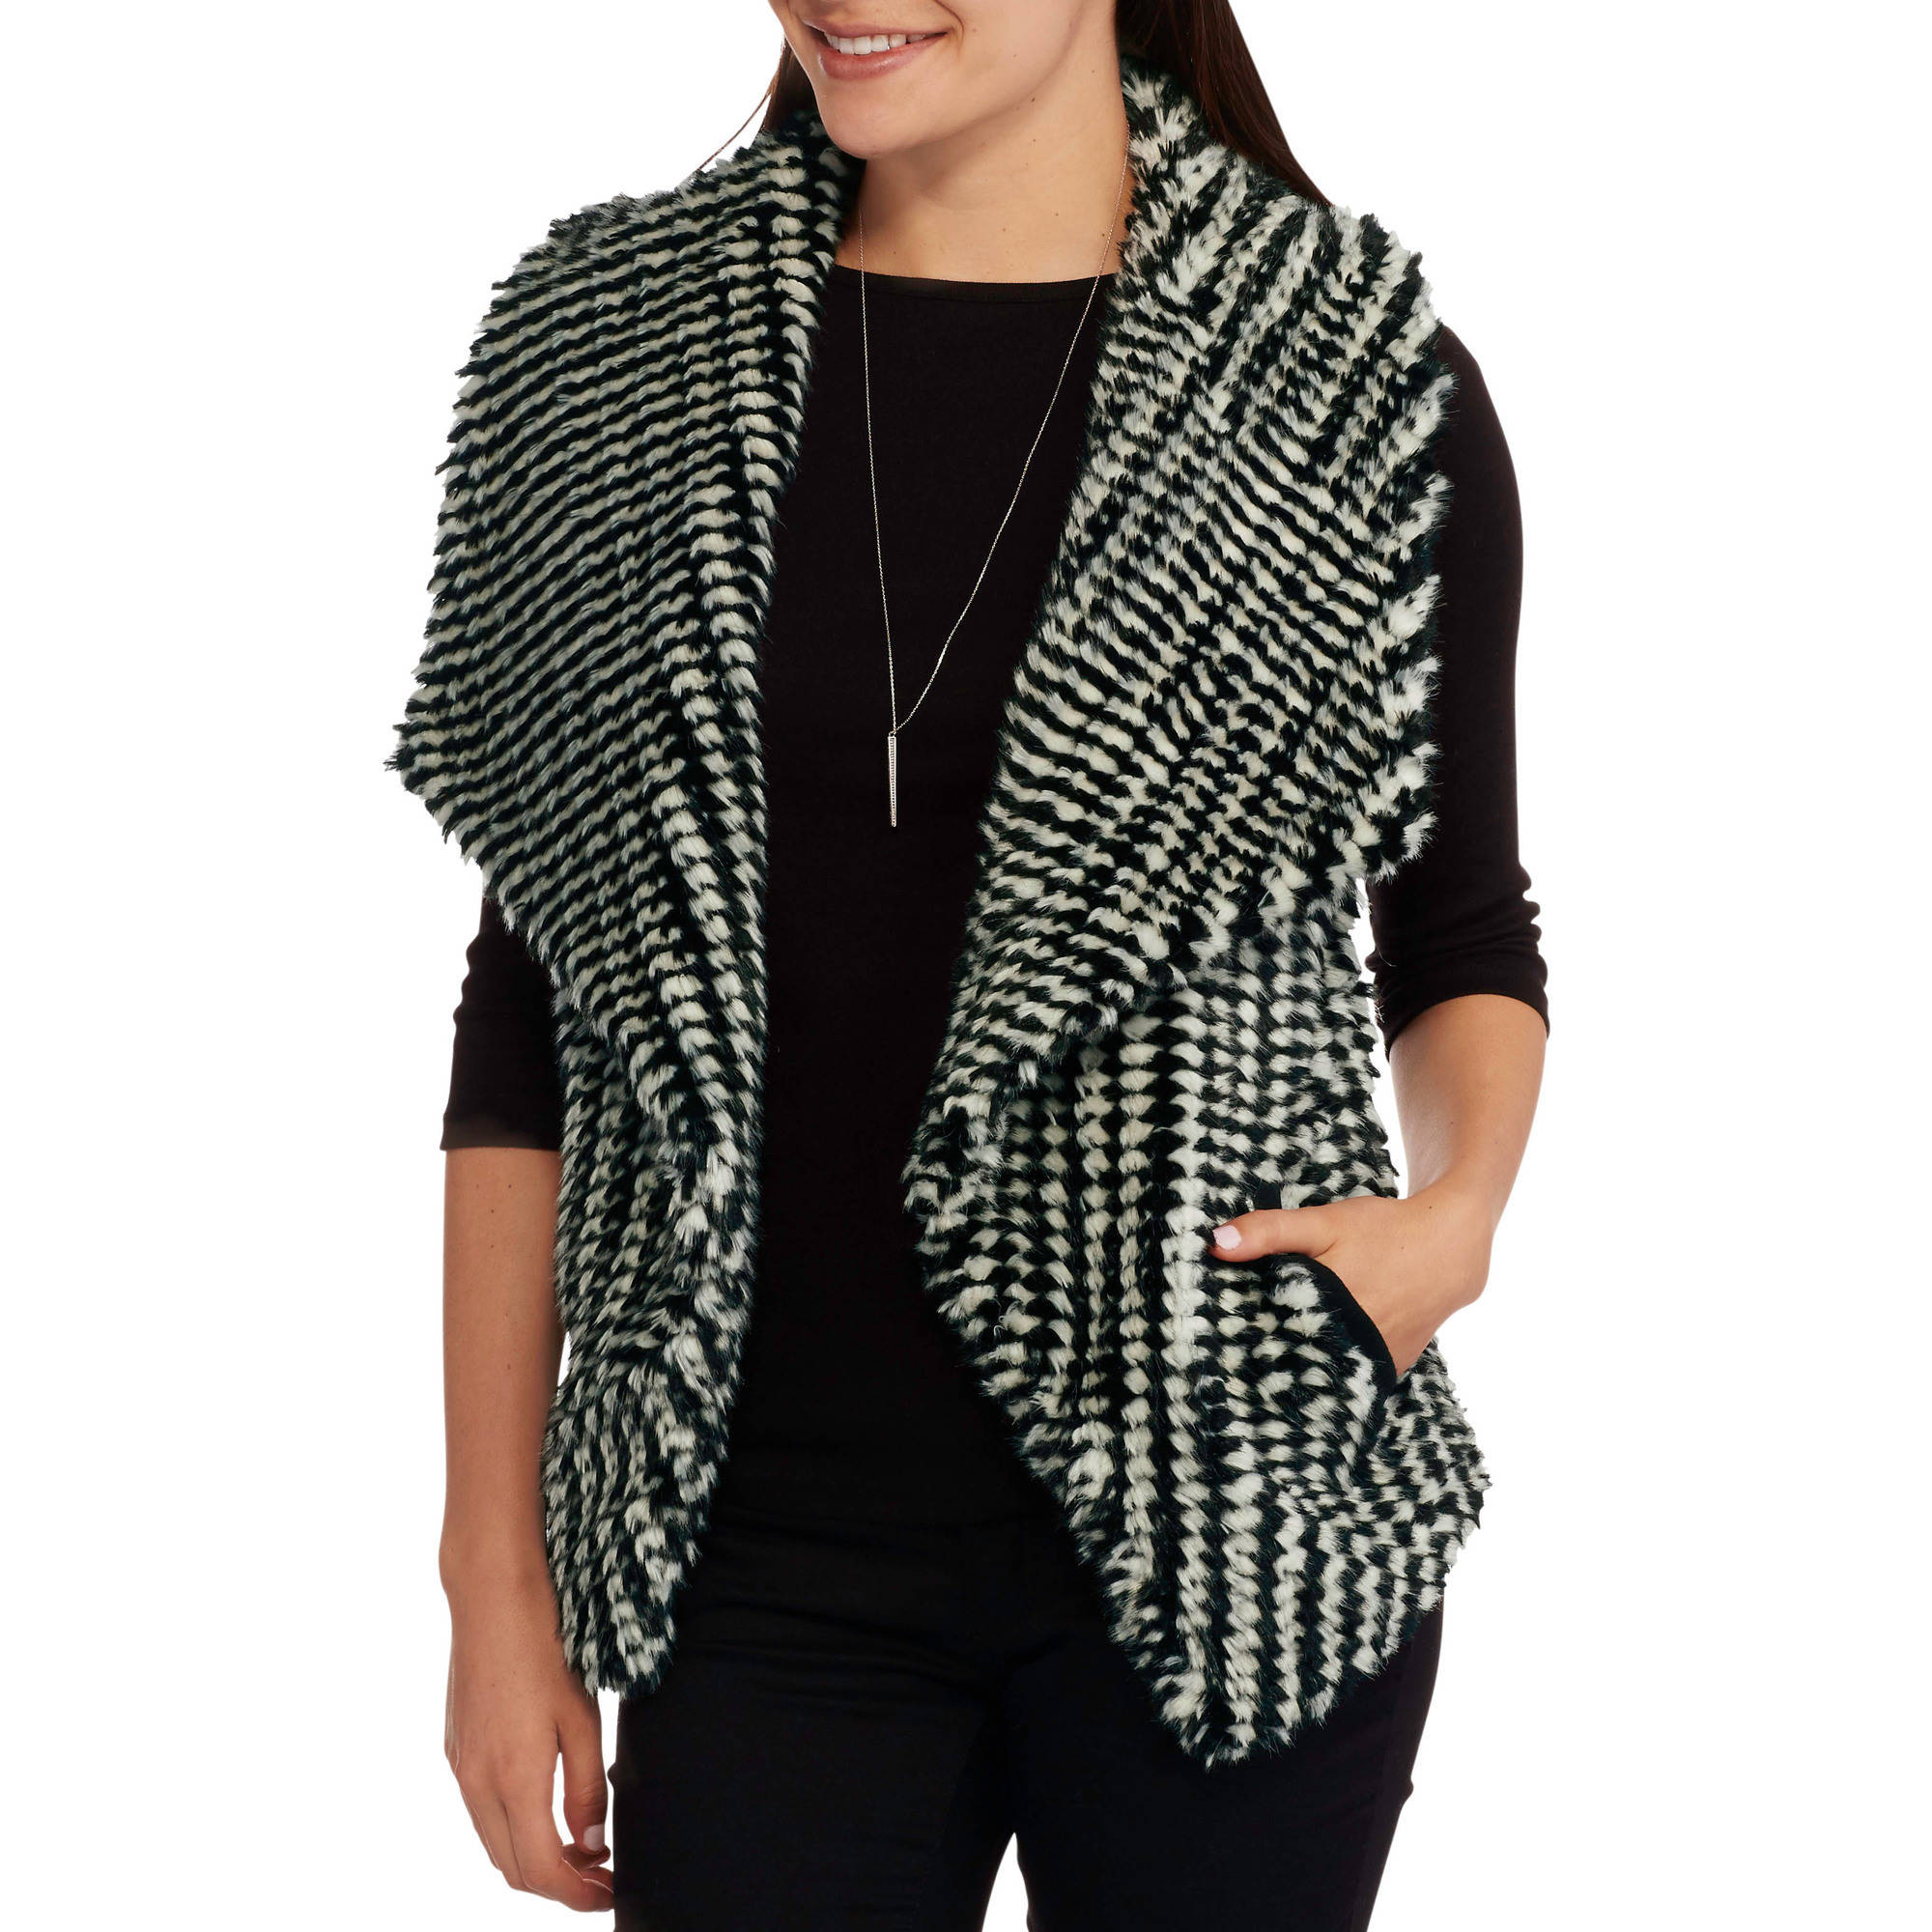 Maxwell Studio Women's Textured Faux Fur Vest